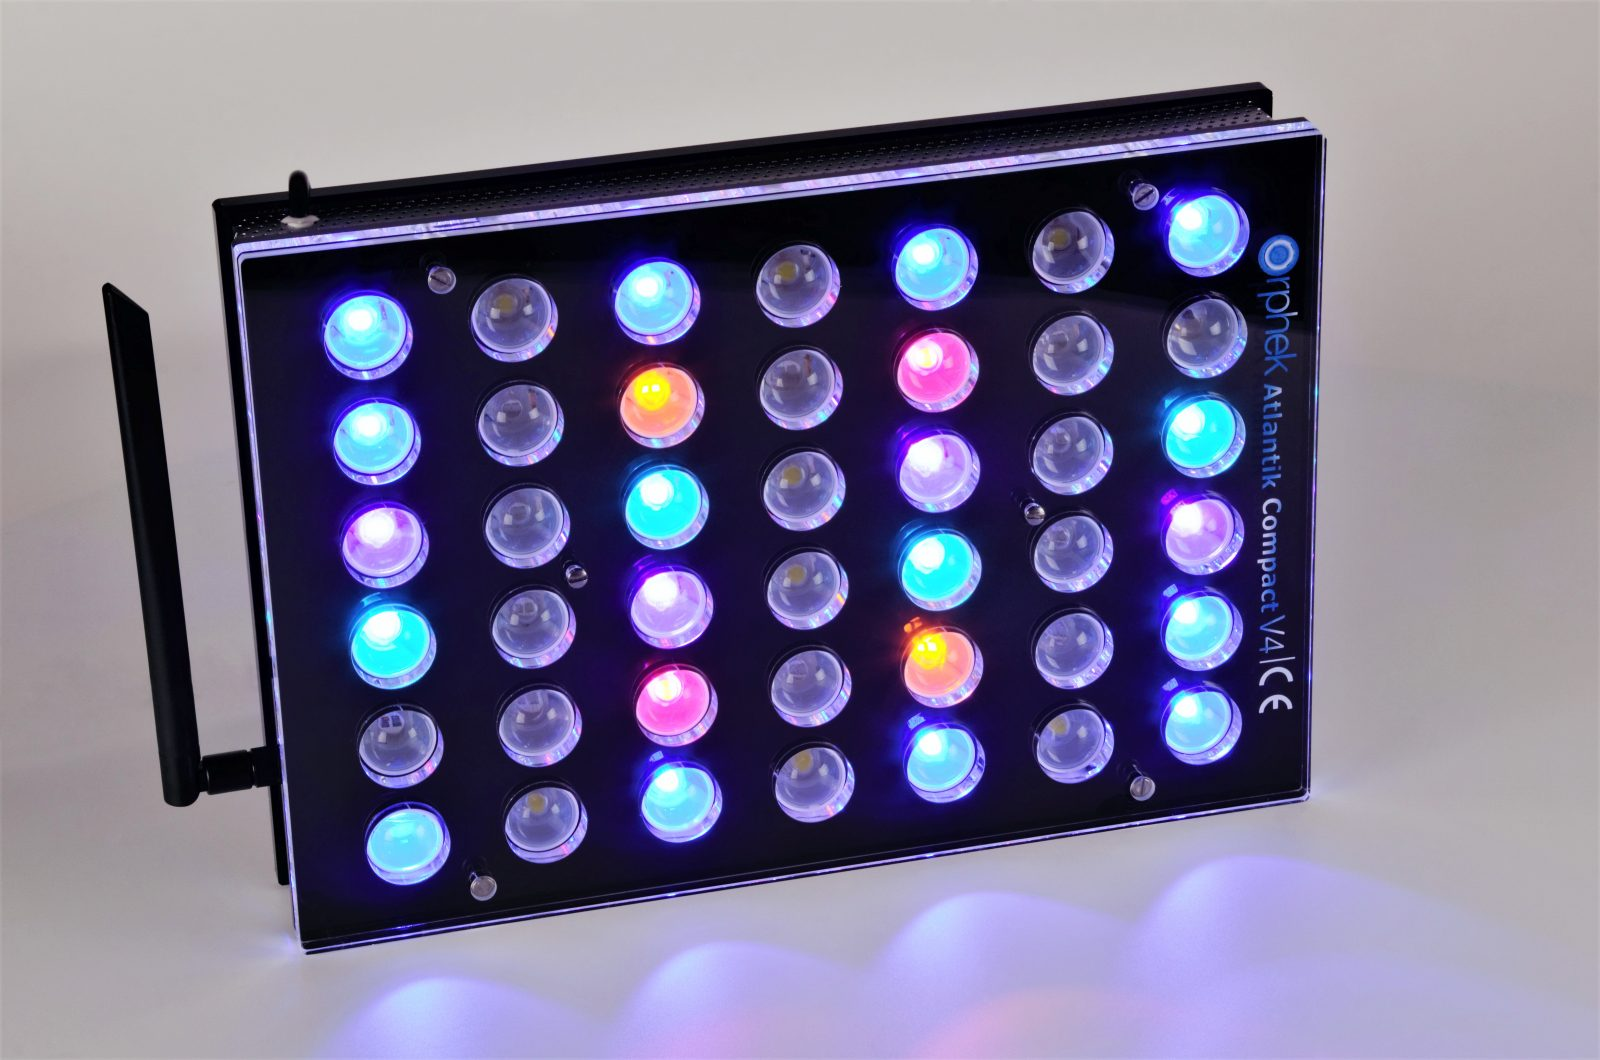 Orphek-Aquarium-LED-Lighting-Atlantik -Compact-V4-licht -on-kanaal 2 + 4